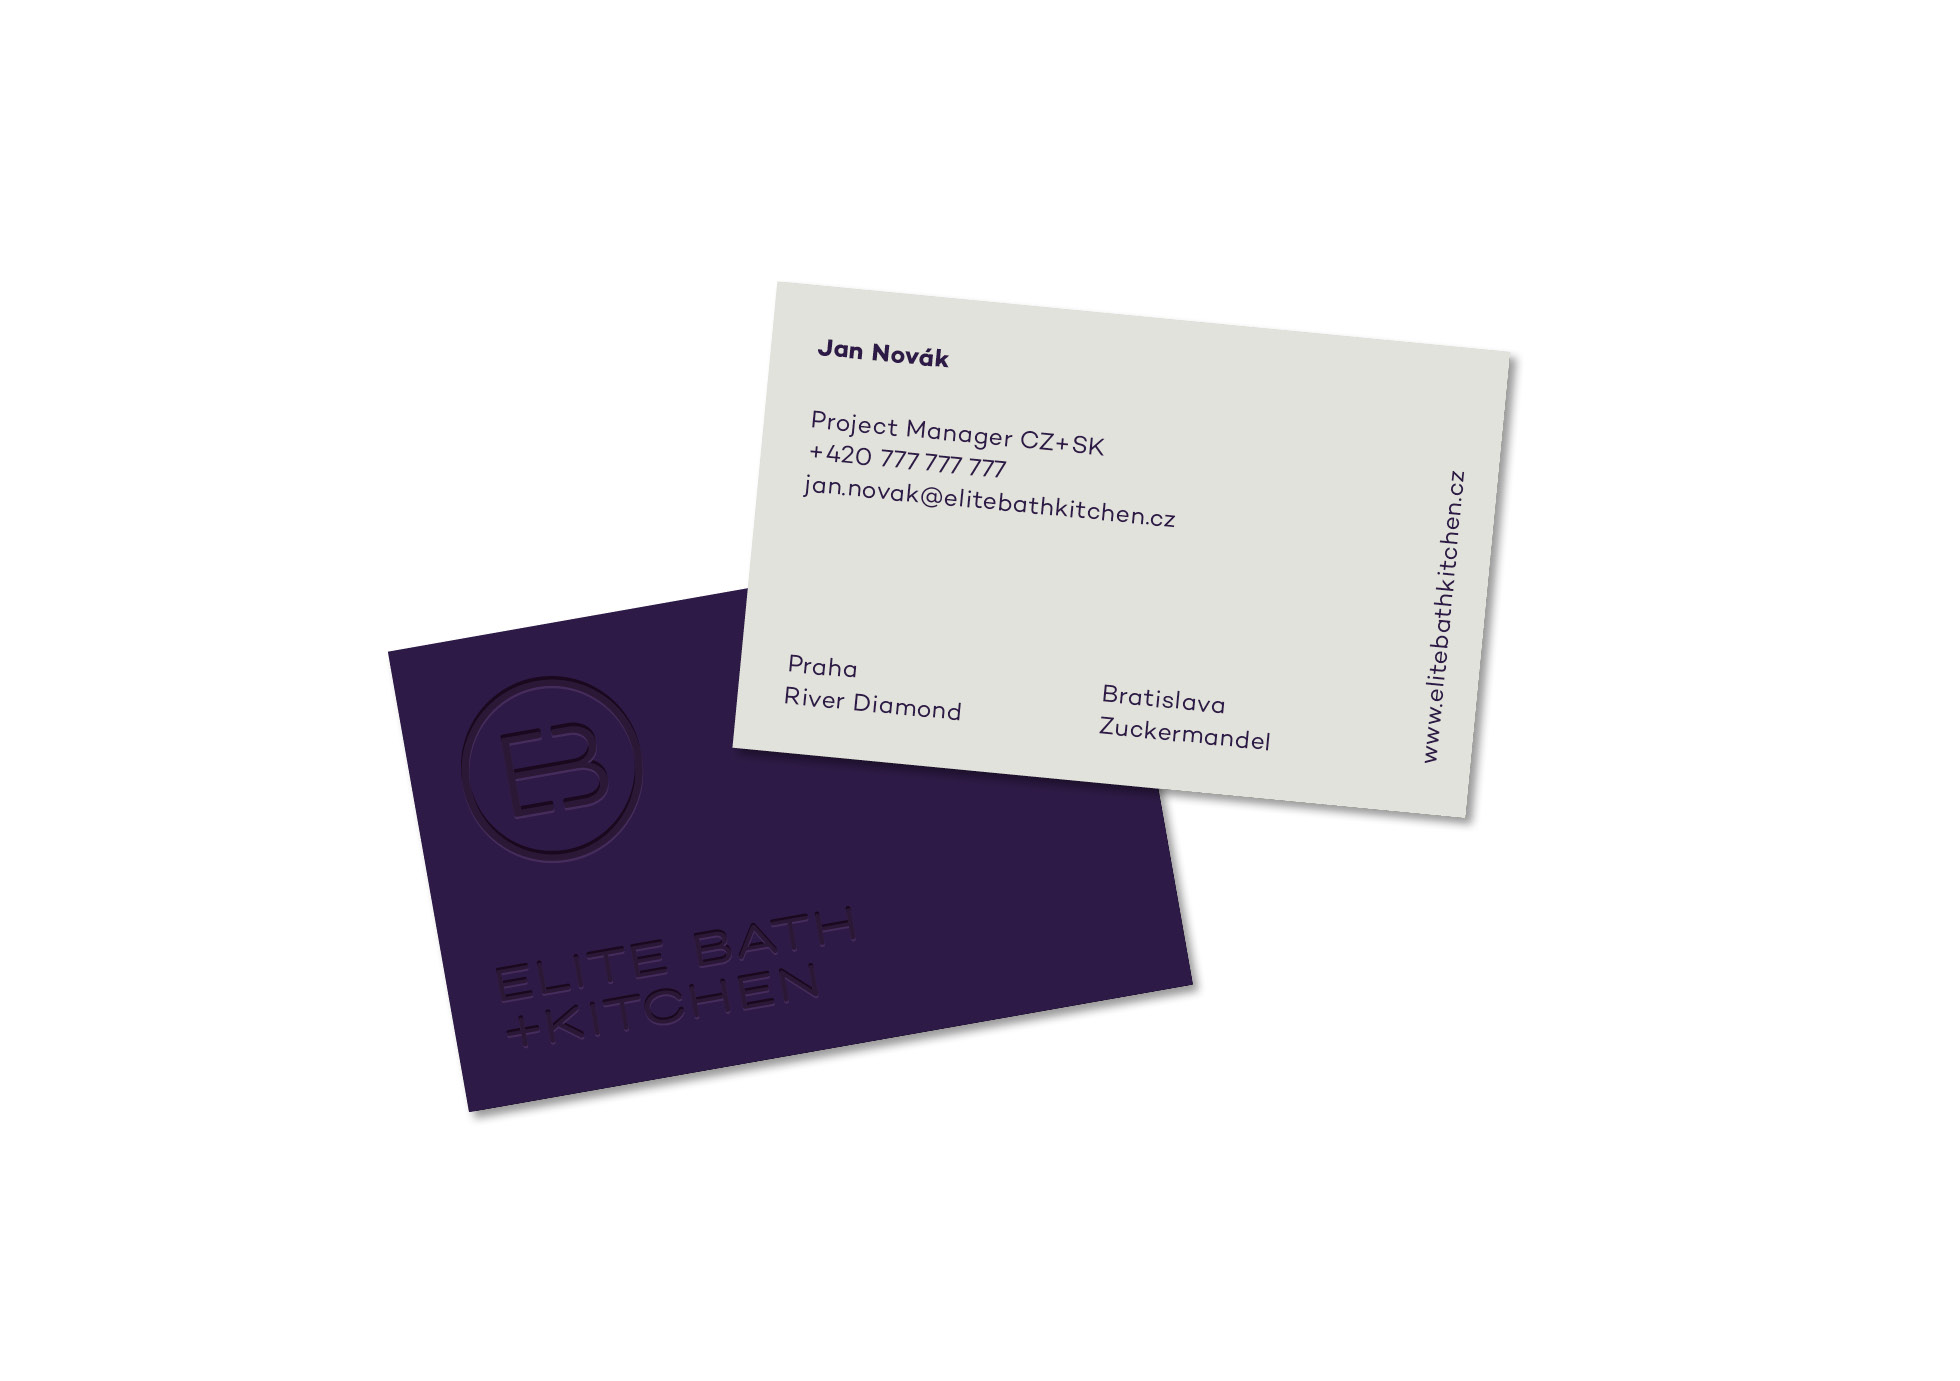 retail_EBK_business_card